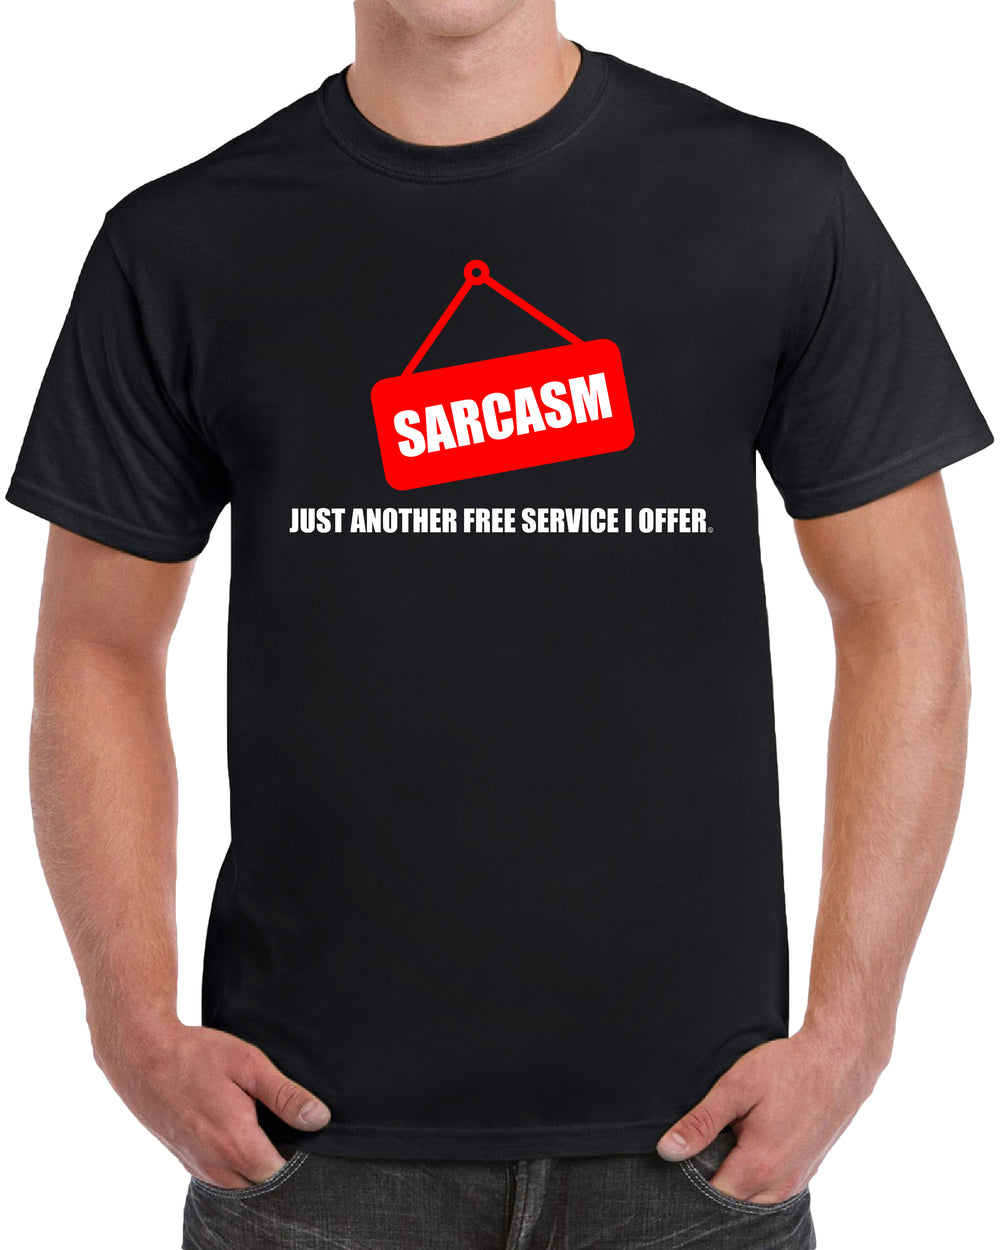 Sarcasm - Just Another Free Service I Offer - Solid Print